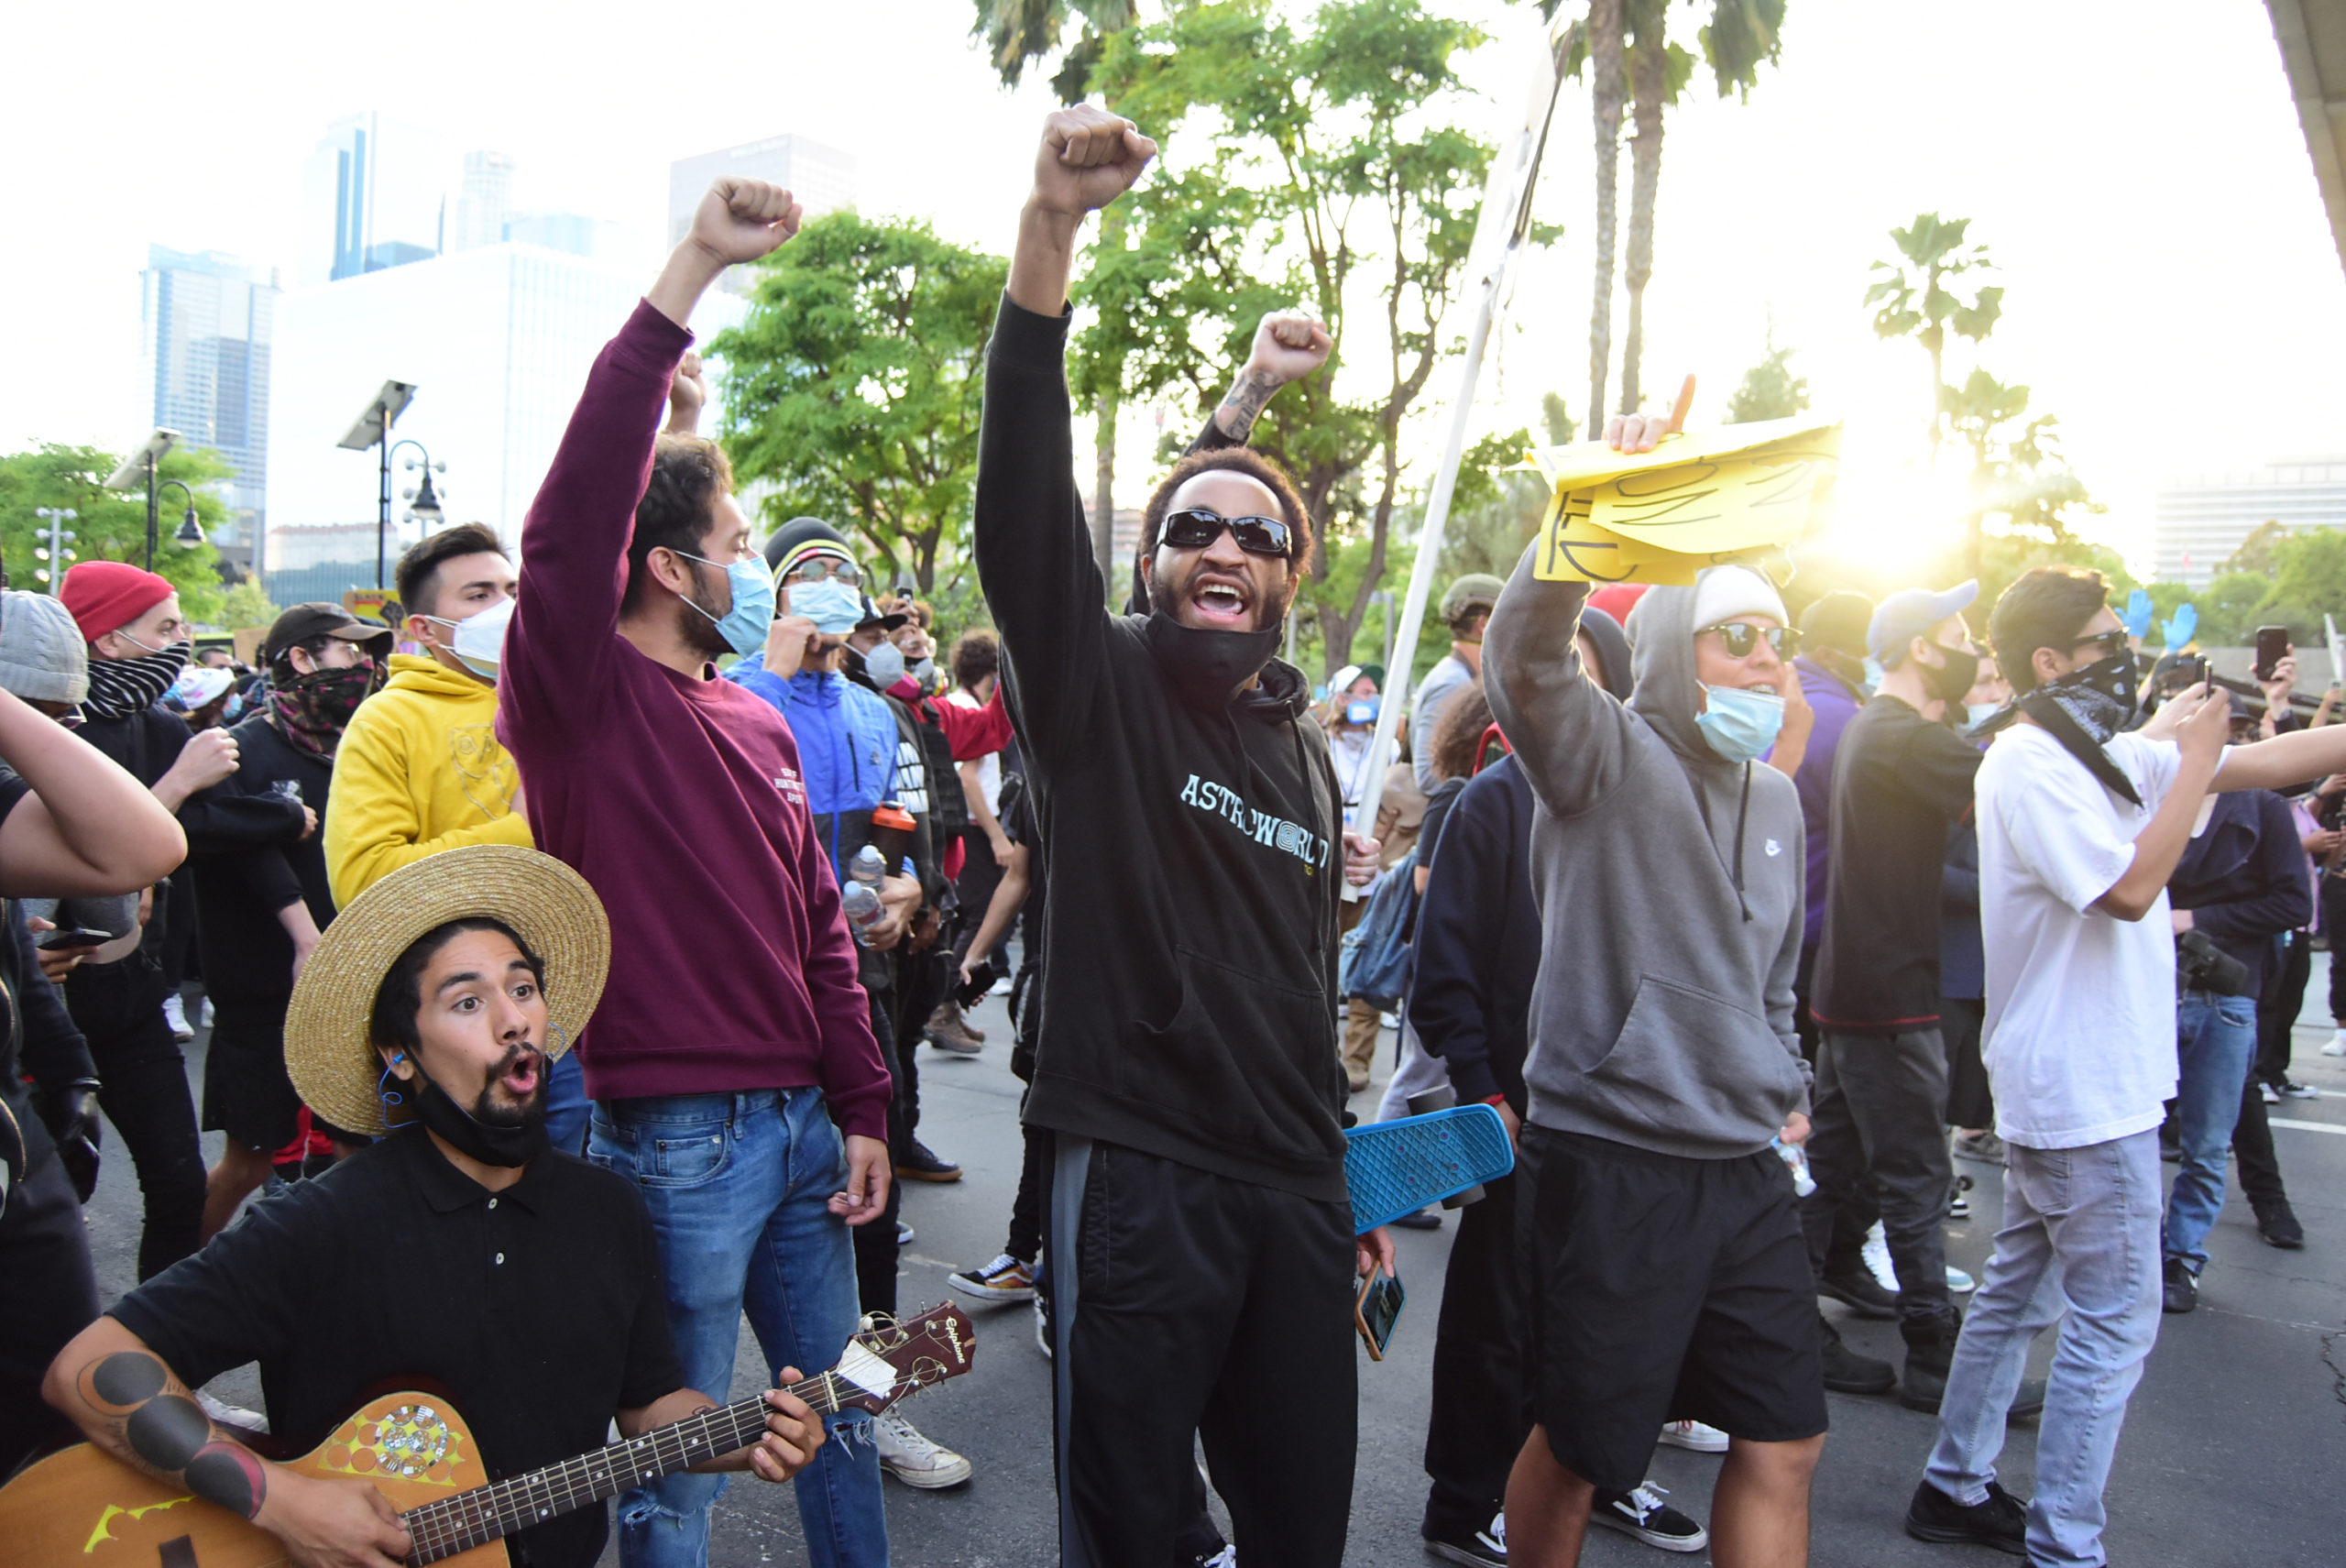 south-pasadena-news-05-31-2020-george-floyd-blm-black-lives-matter-protests-los-angeles-day-2-121